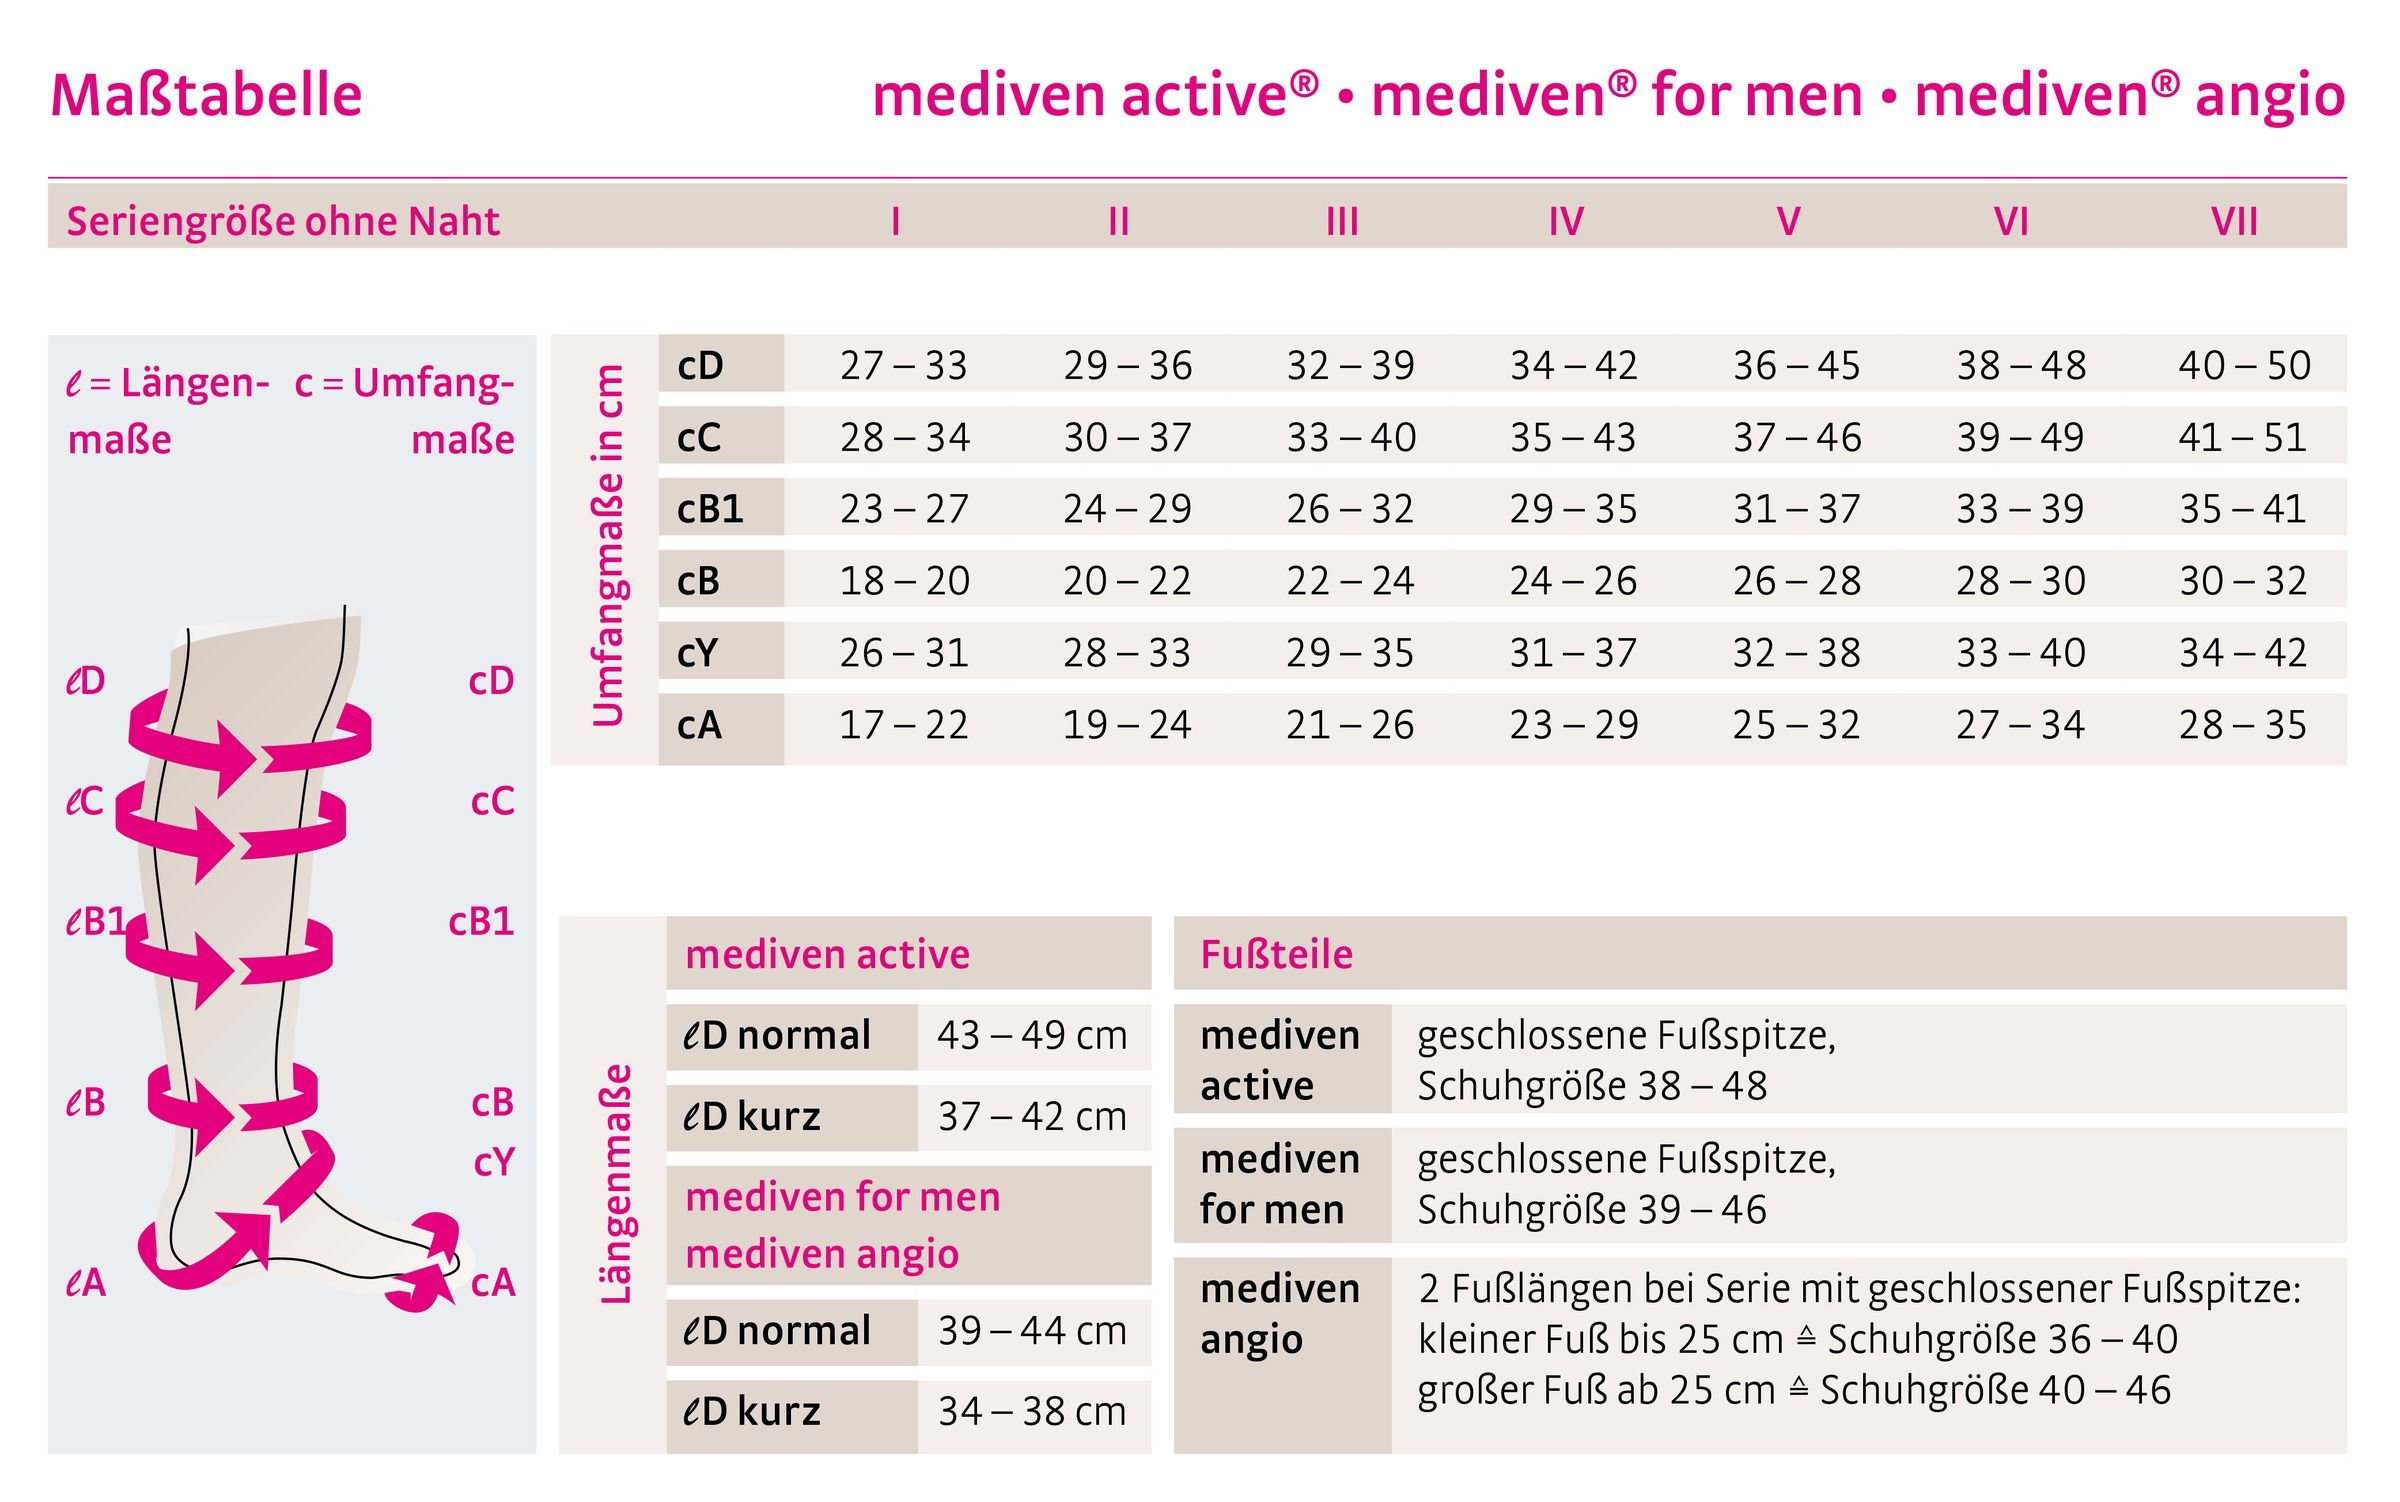 Größentabelle mediven active, mediven for men, mediven angio deutsch